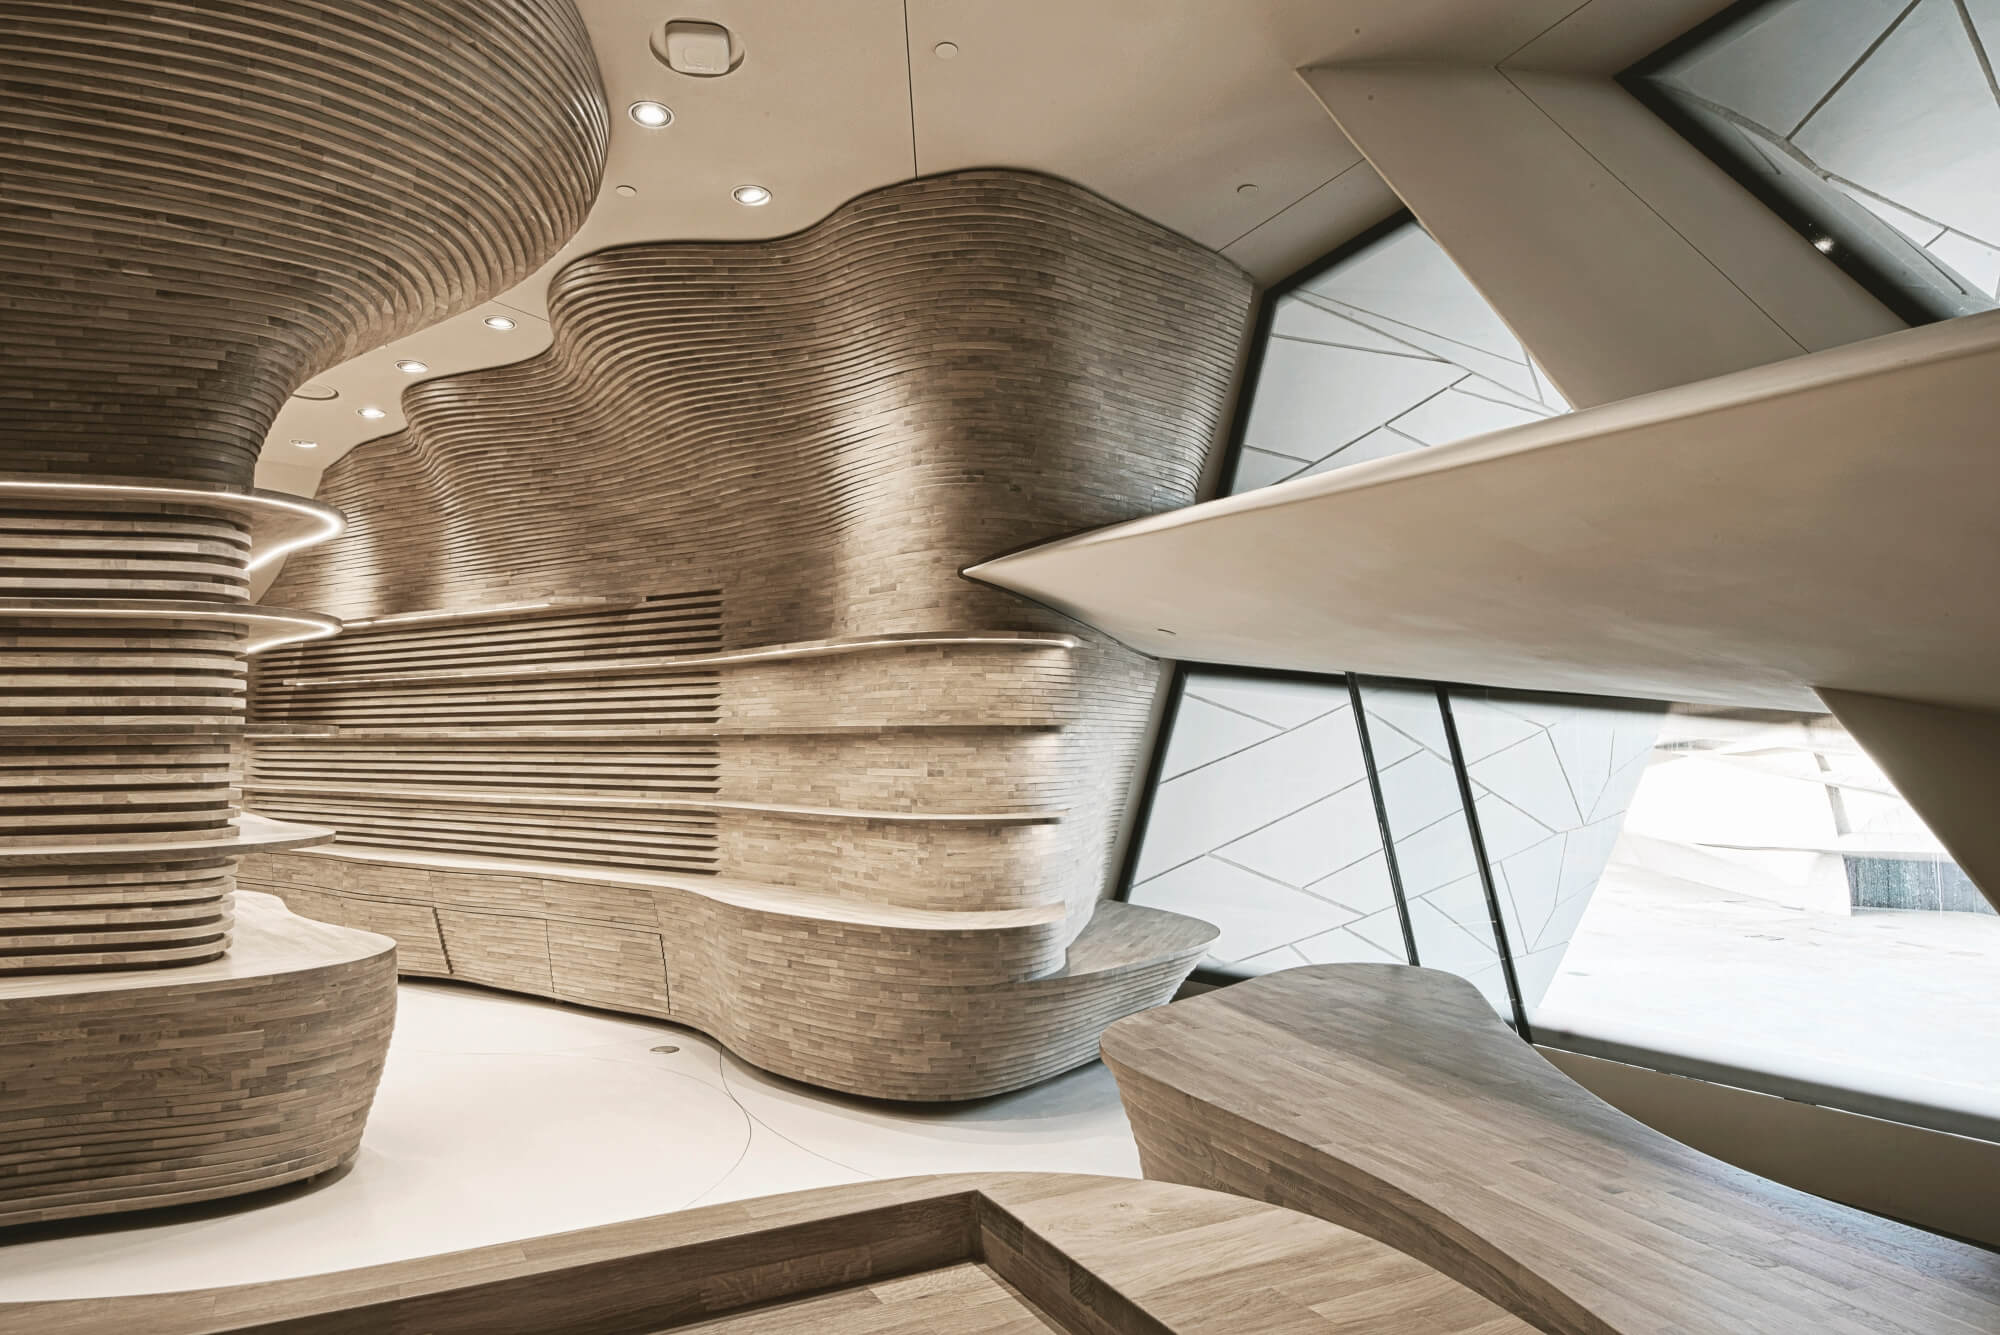 Gift shop designed using individual pieces of wood that contour to the curved flow of the room.